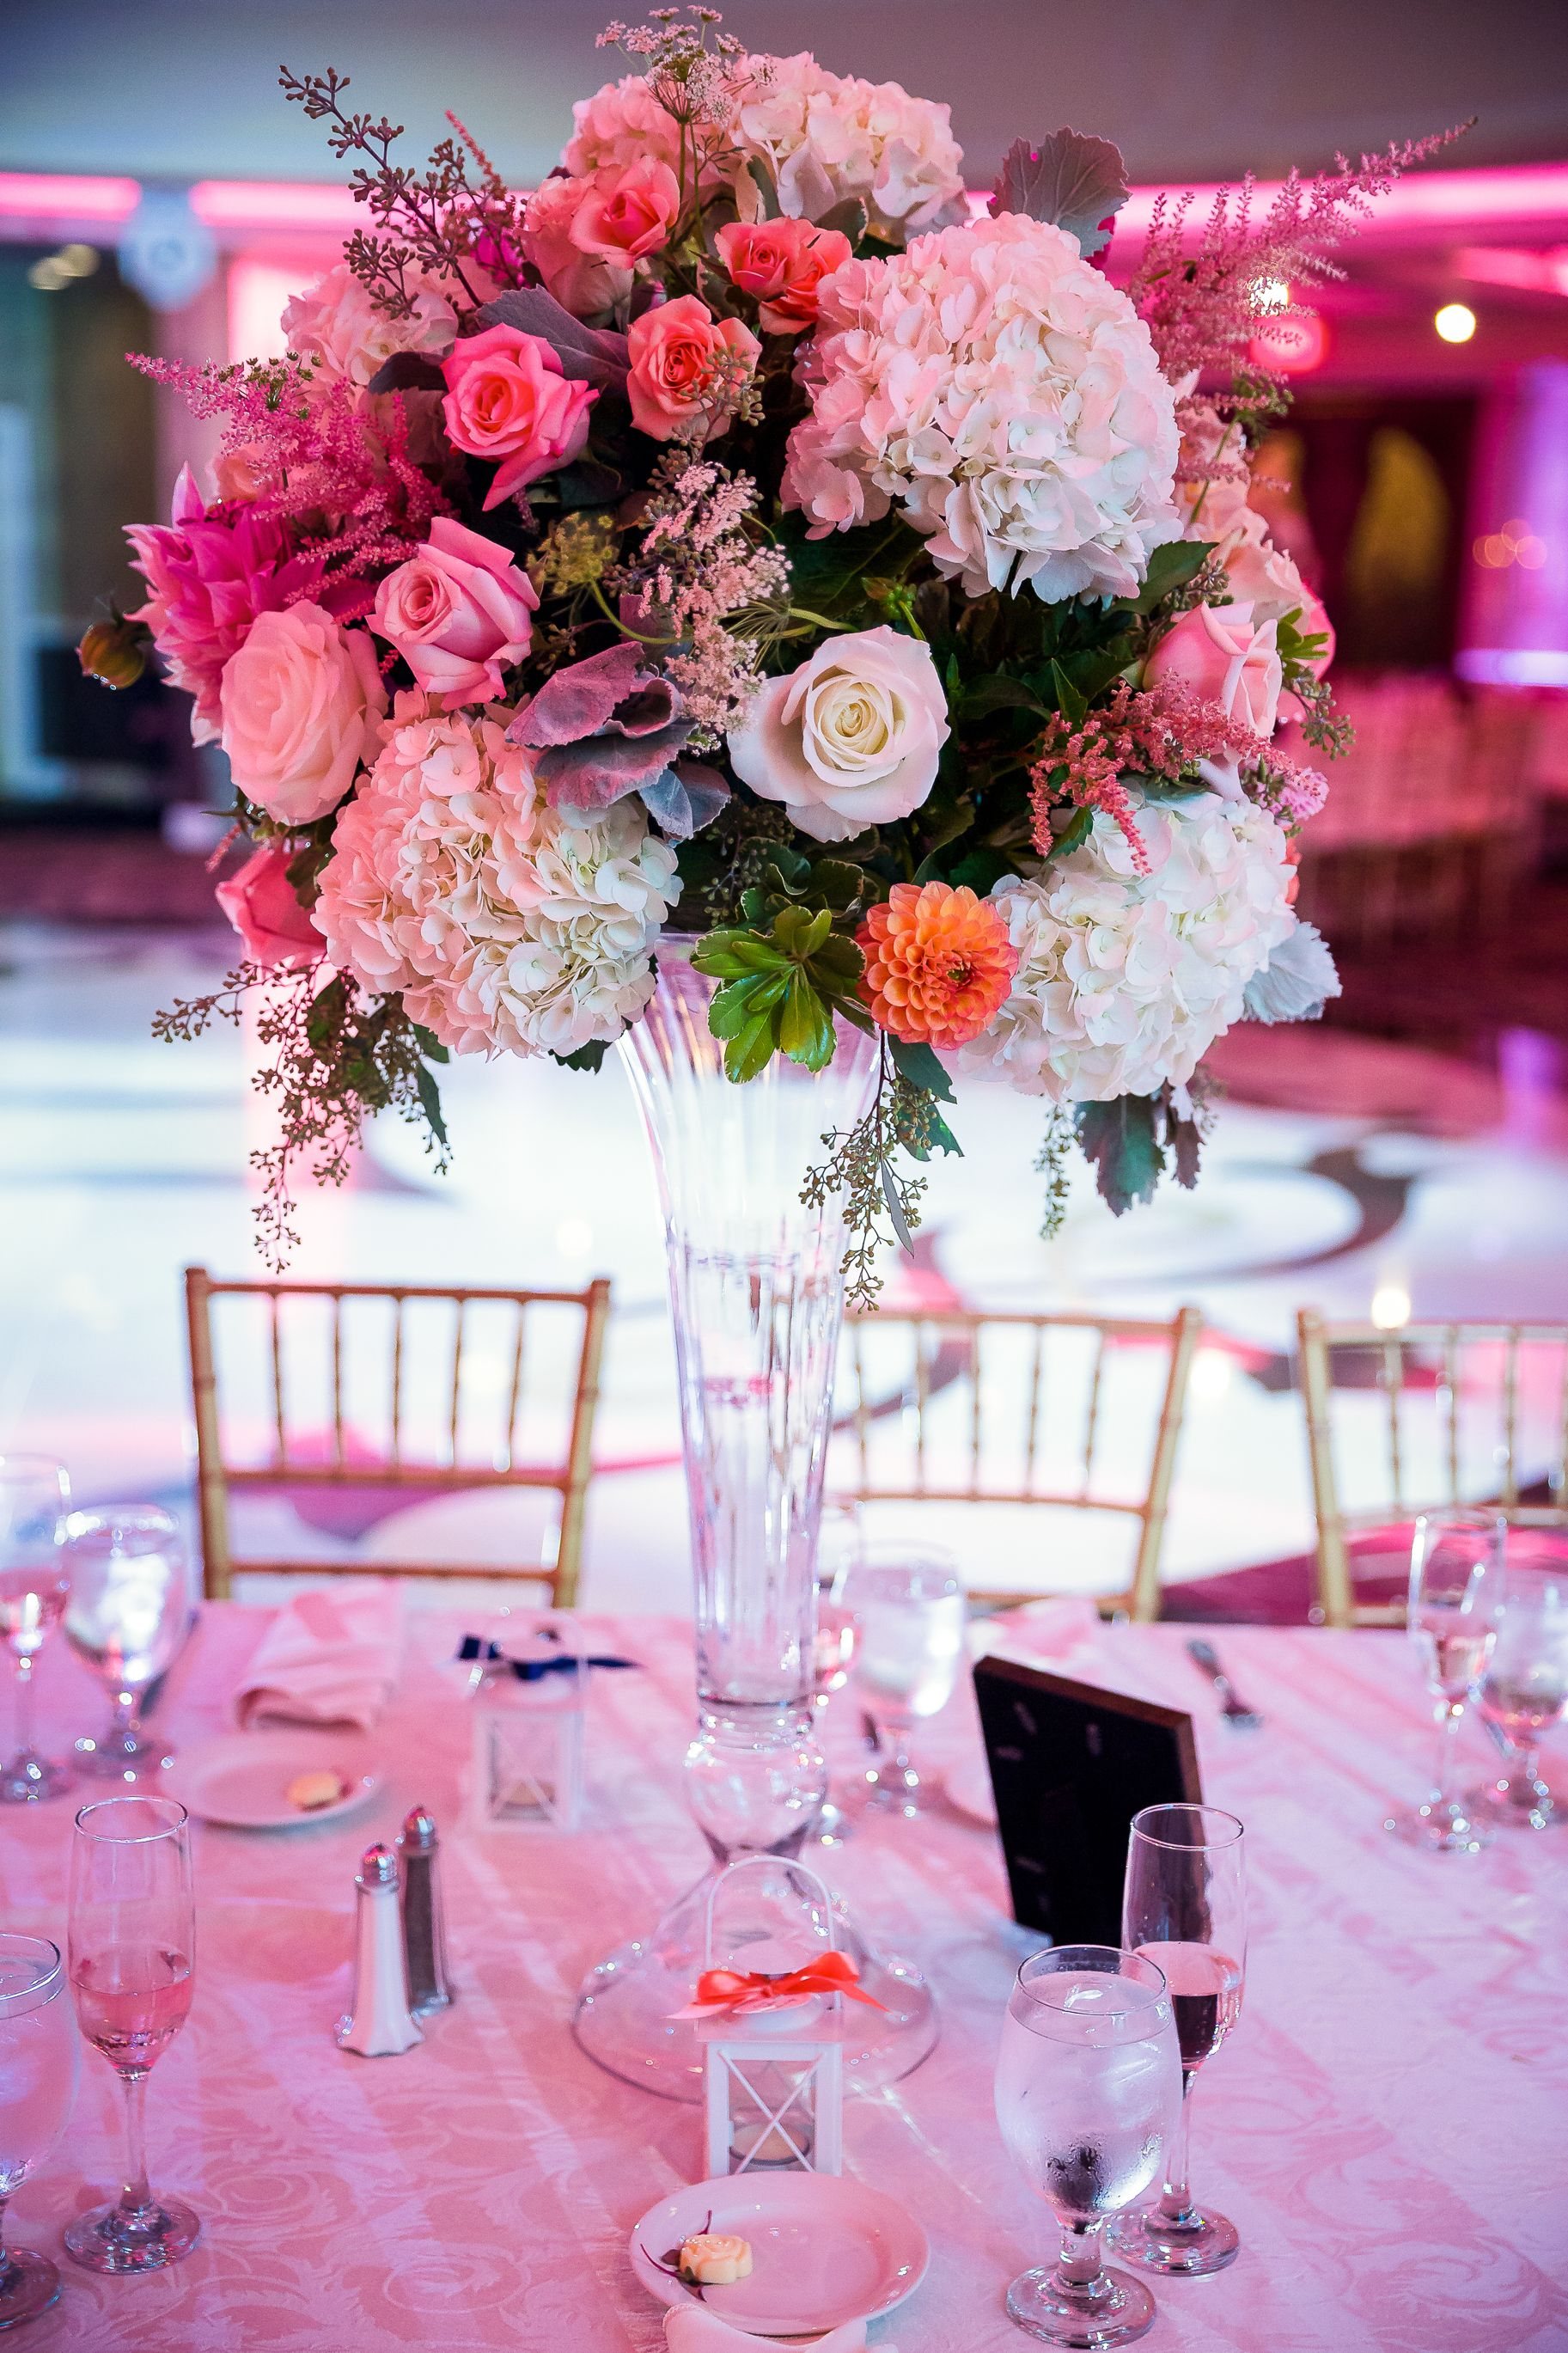 Pin by Anna Rose Floral on Centerpieces & Decor   Pinterest ...